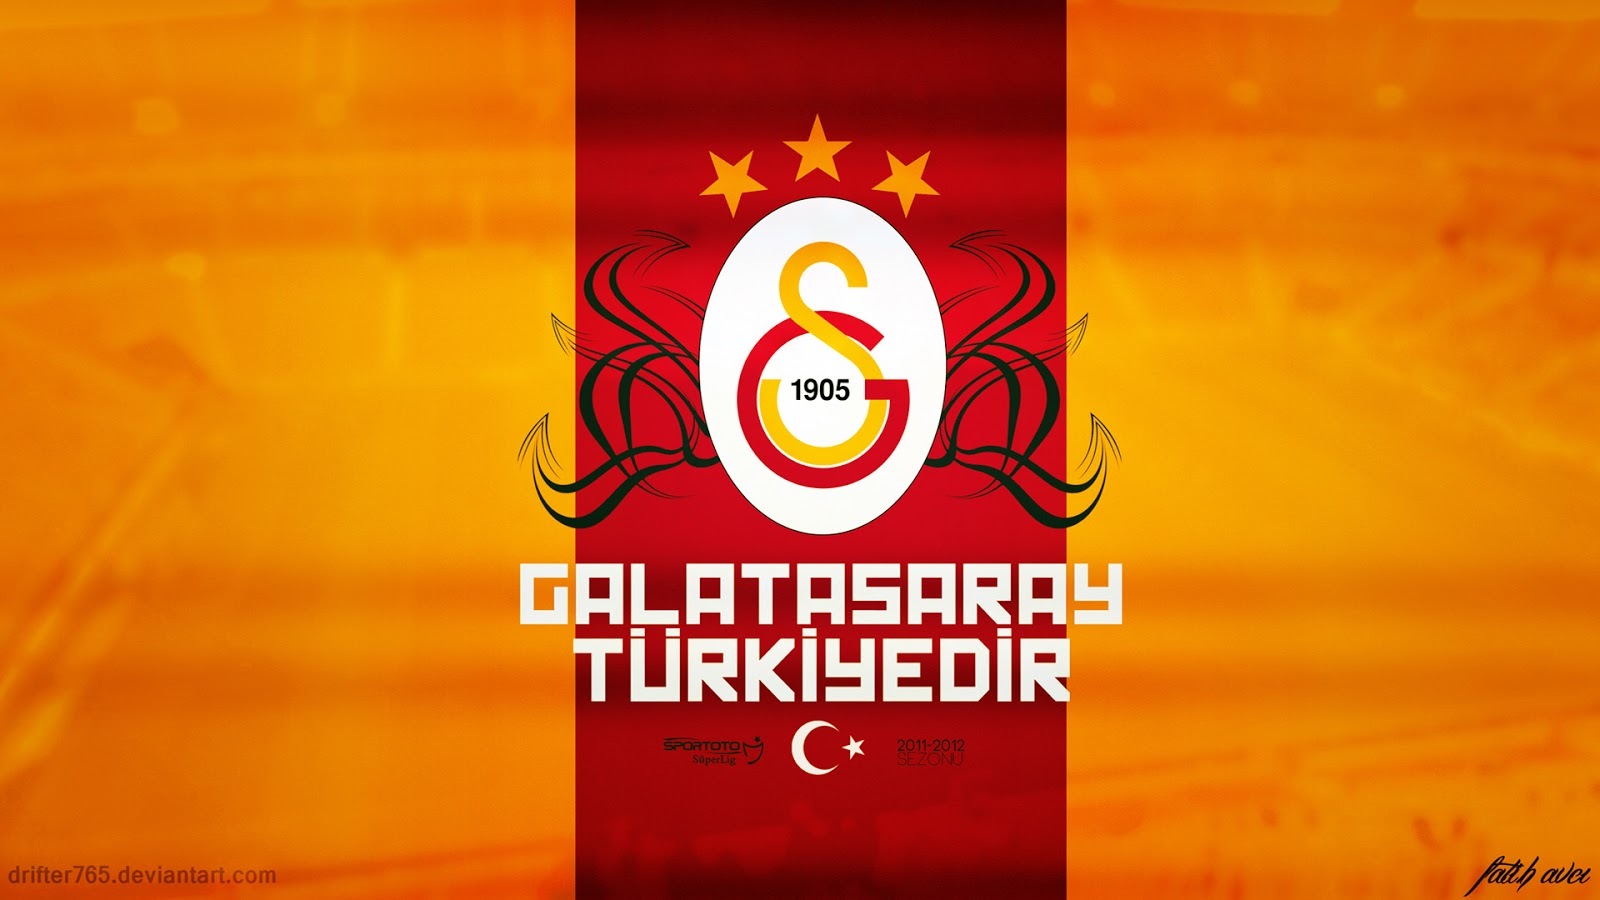 Wallpaper Manchester United Hd 2013 En G 252 Zel Galatasaray Hd Masa 252 St 252 Resimleri Hd Wallpapers